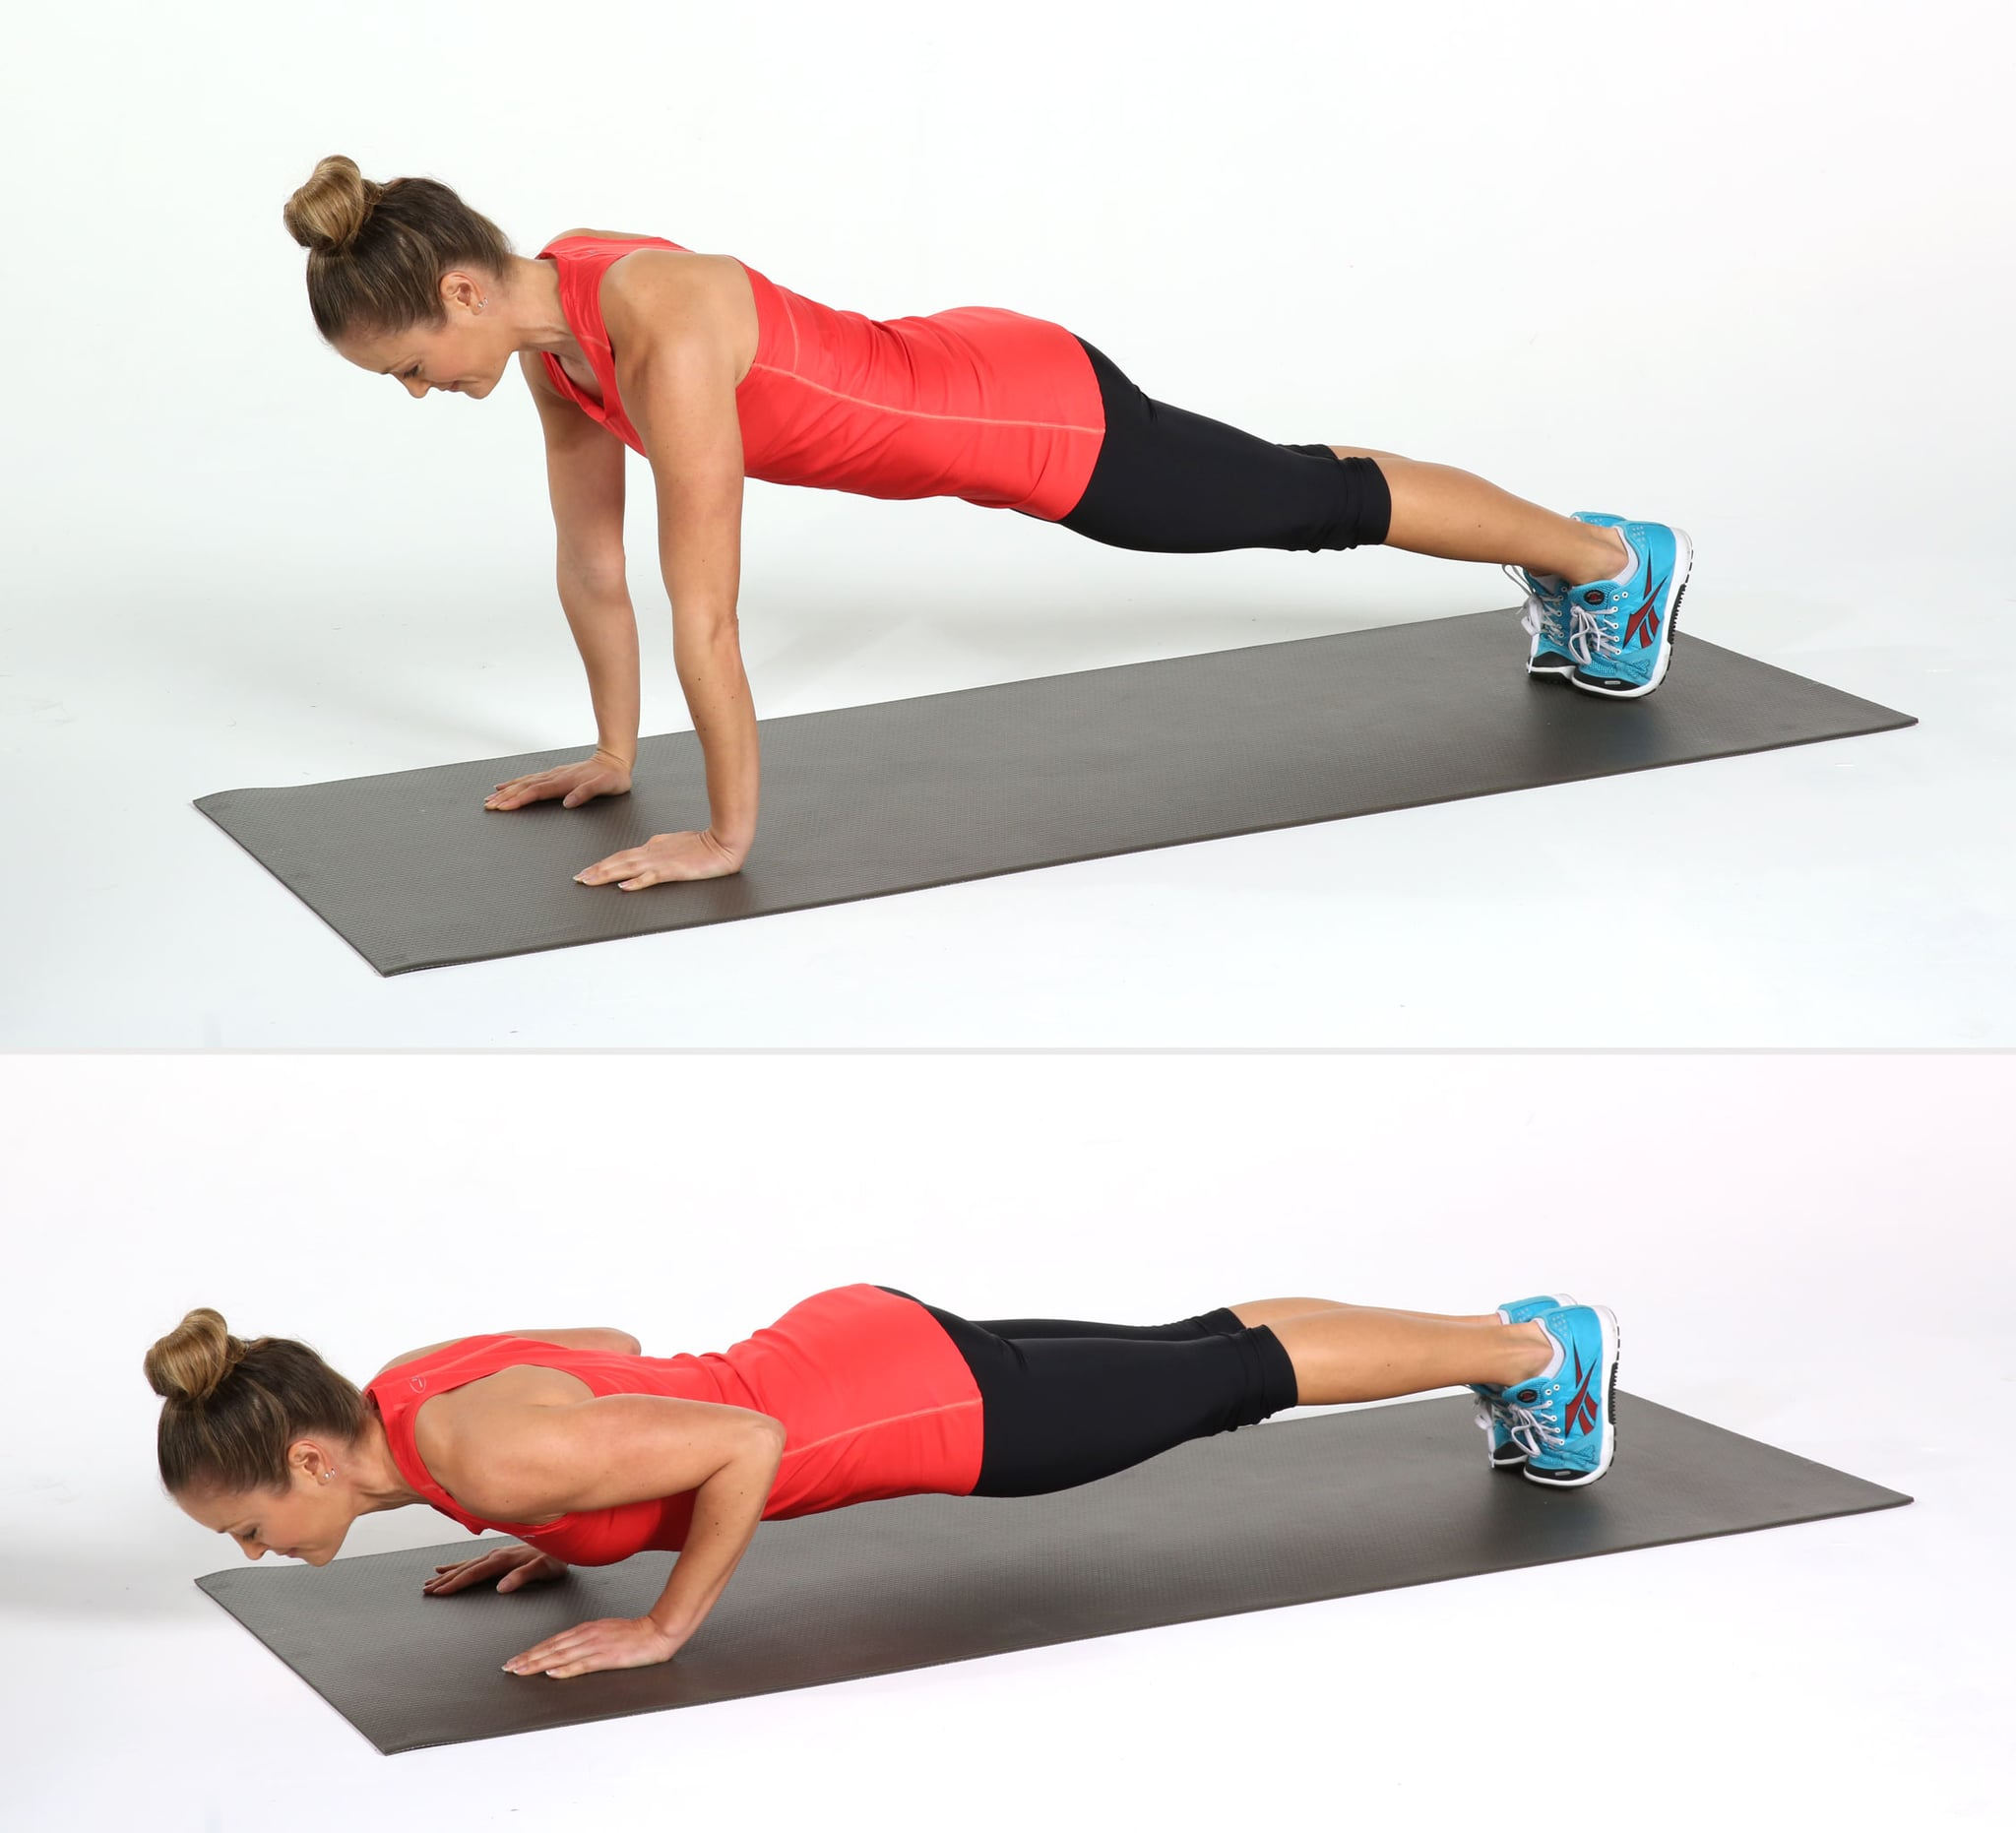 How to Do Triceps Push-Ups | POPSUGAR Fitness